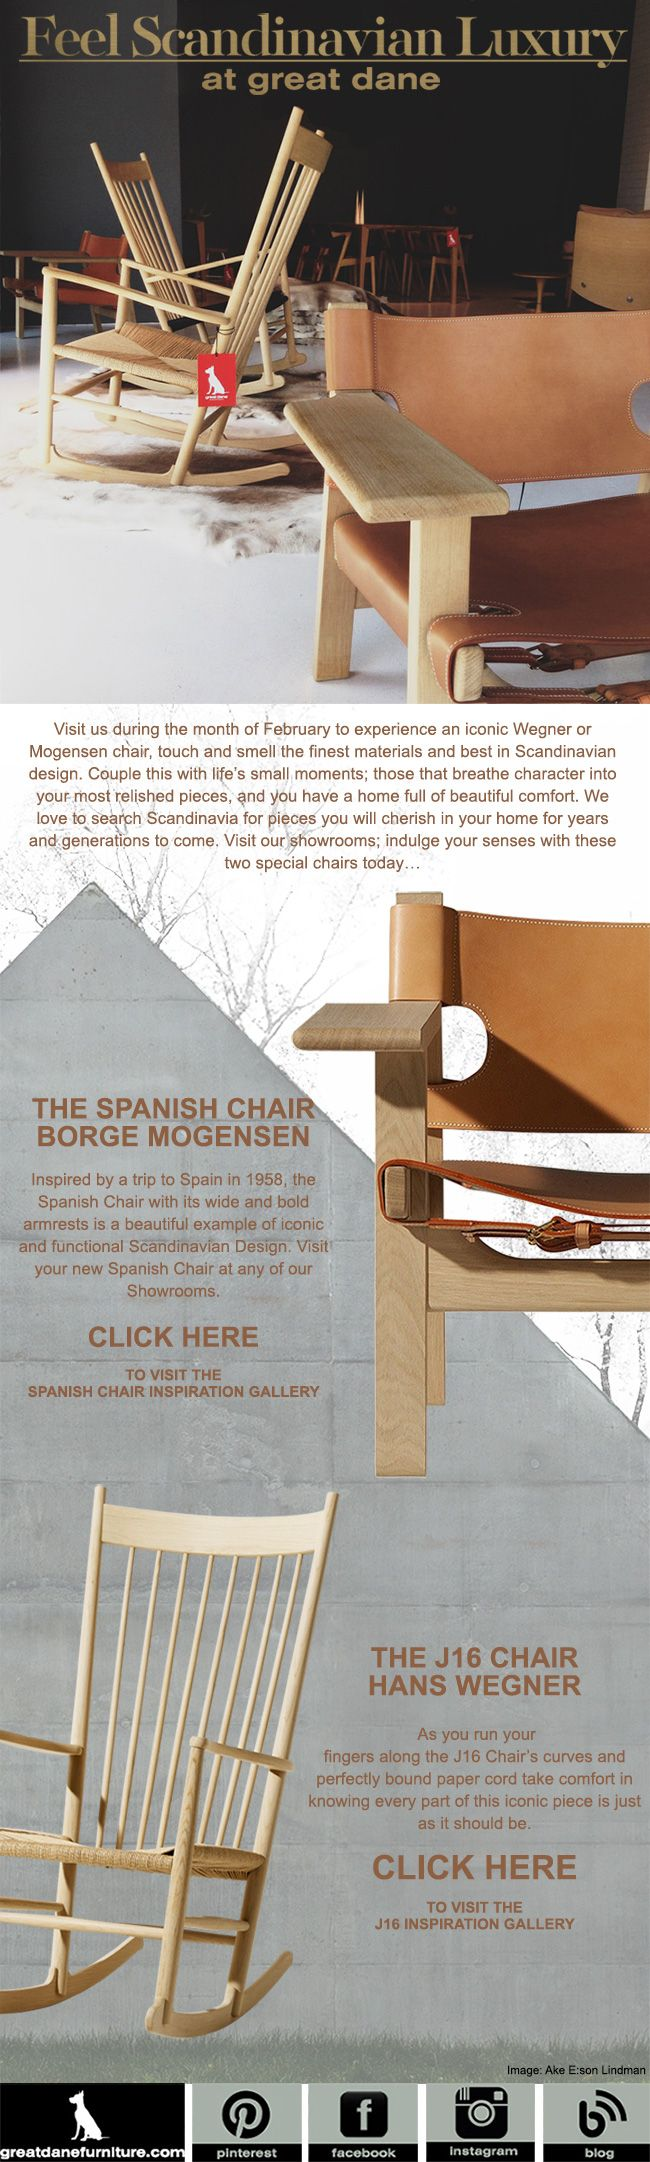 Feel the luxury that is a Borge Mogensen Chair or a J16 Hans Wegner Rocking Chair.